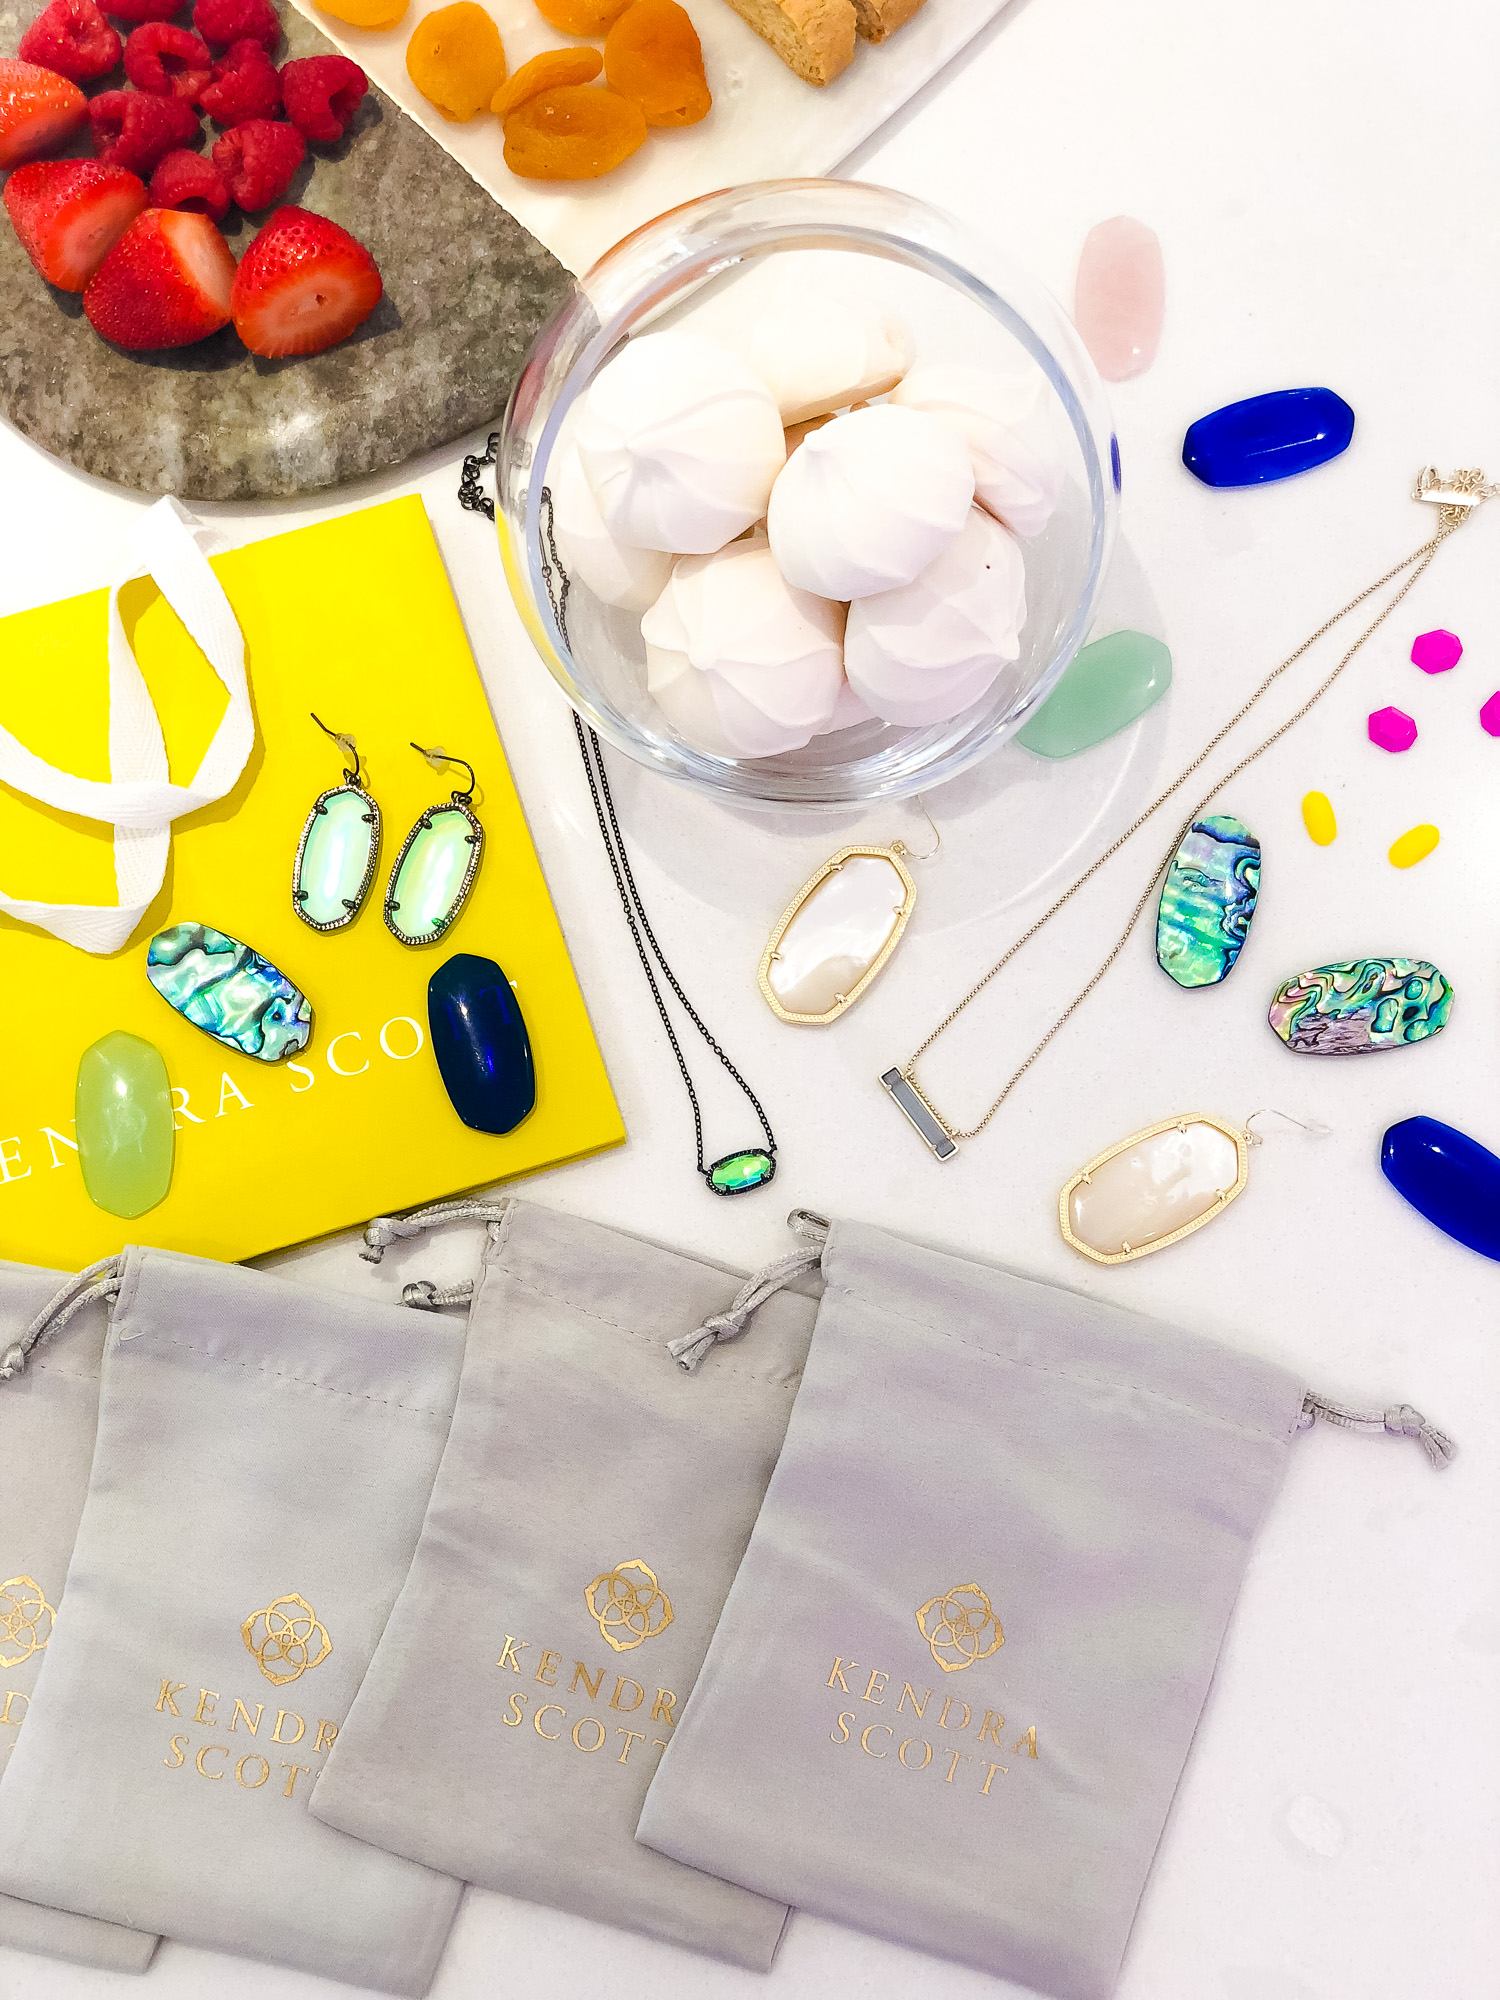 Kendra Scott Color Bar Party